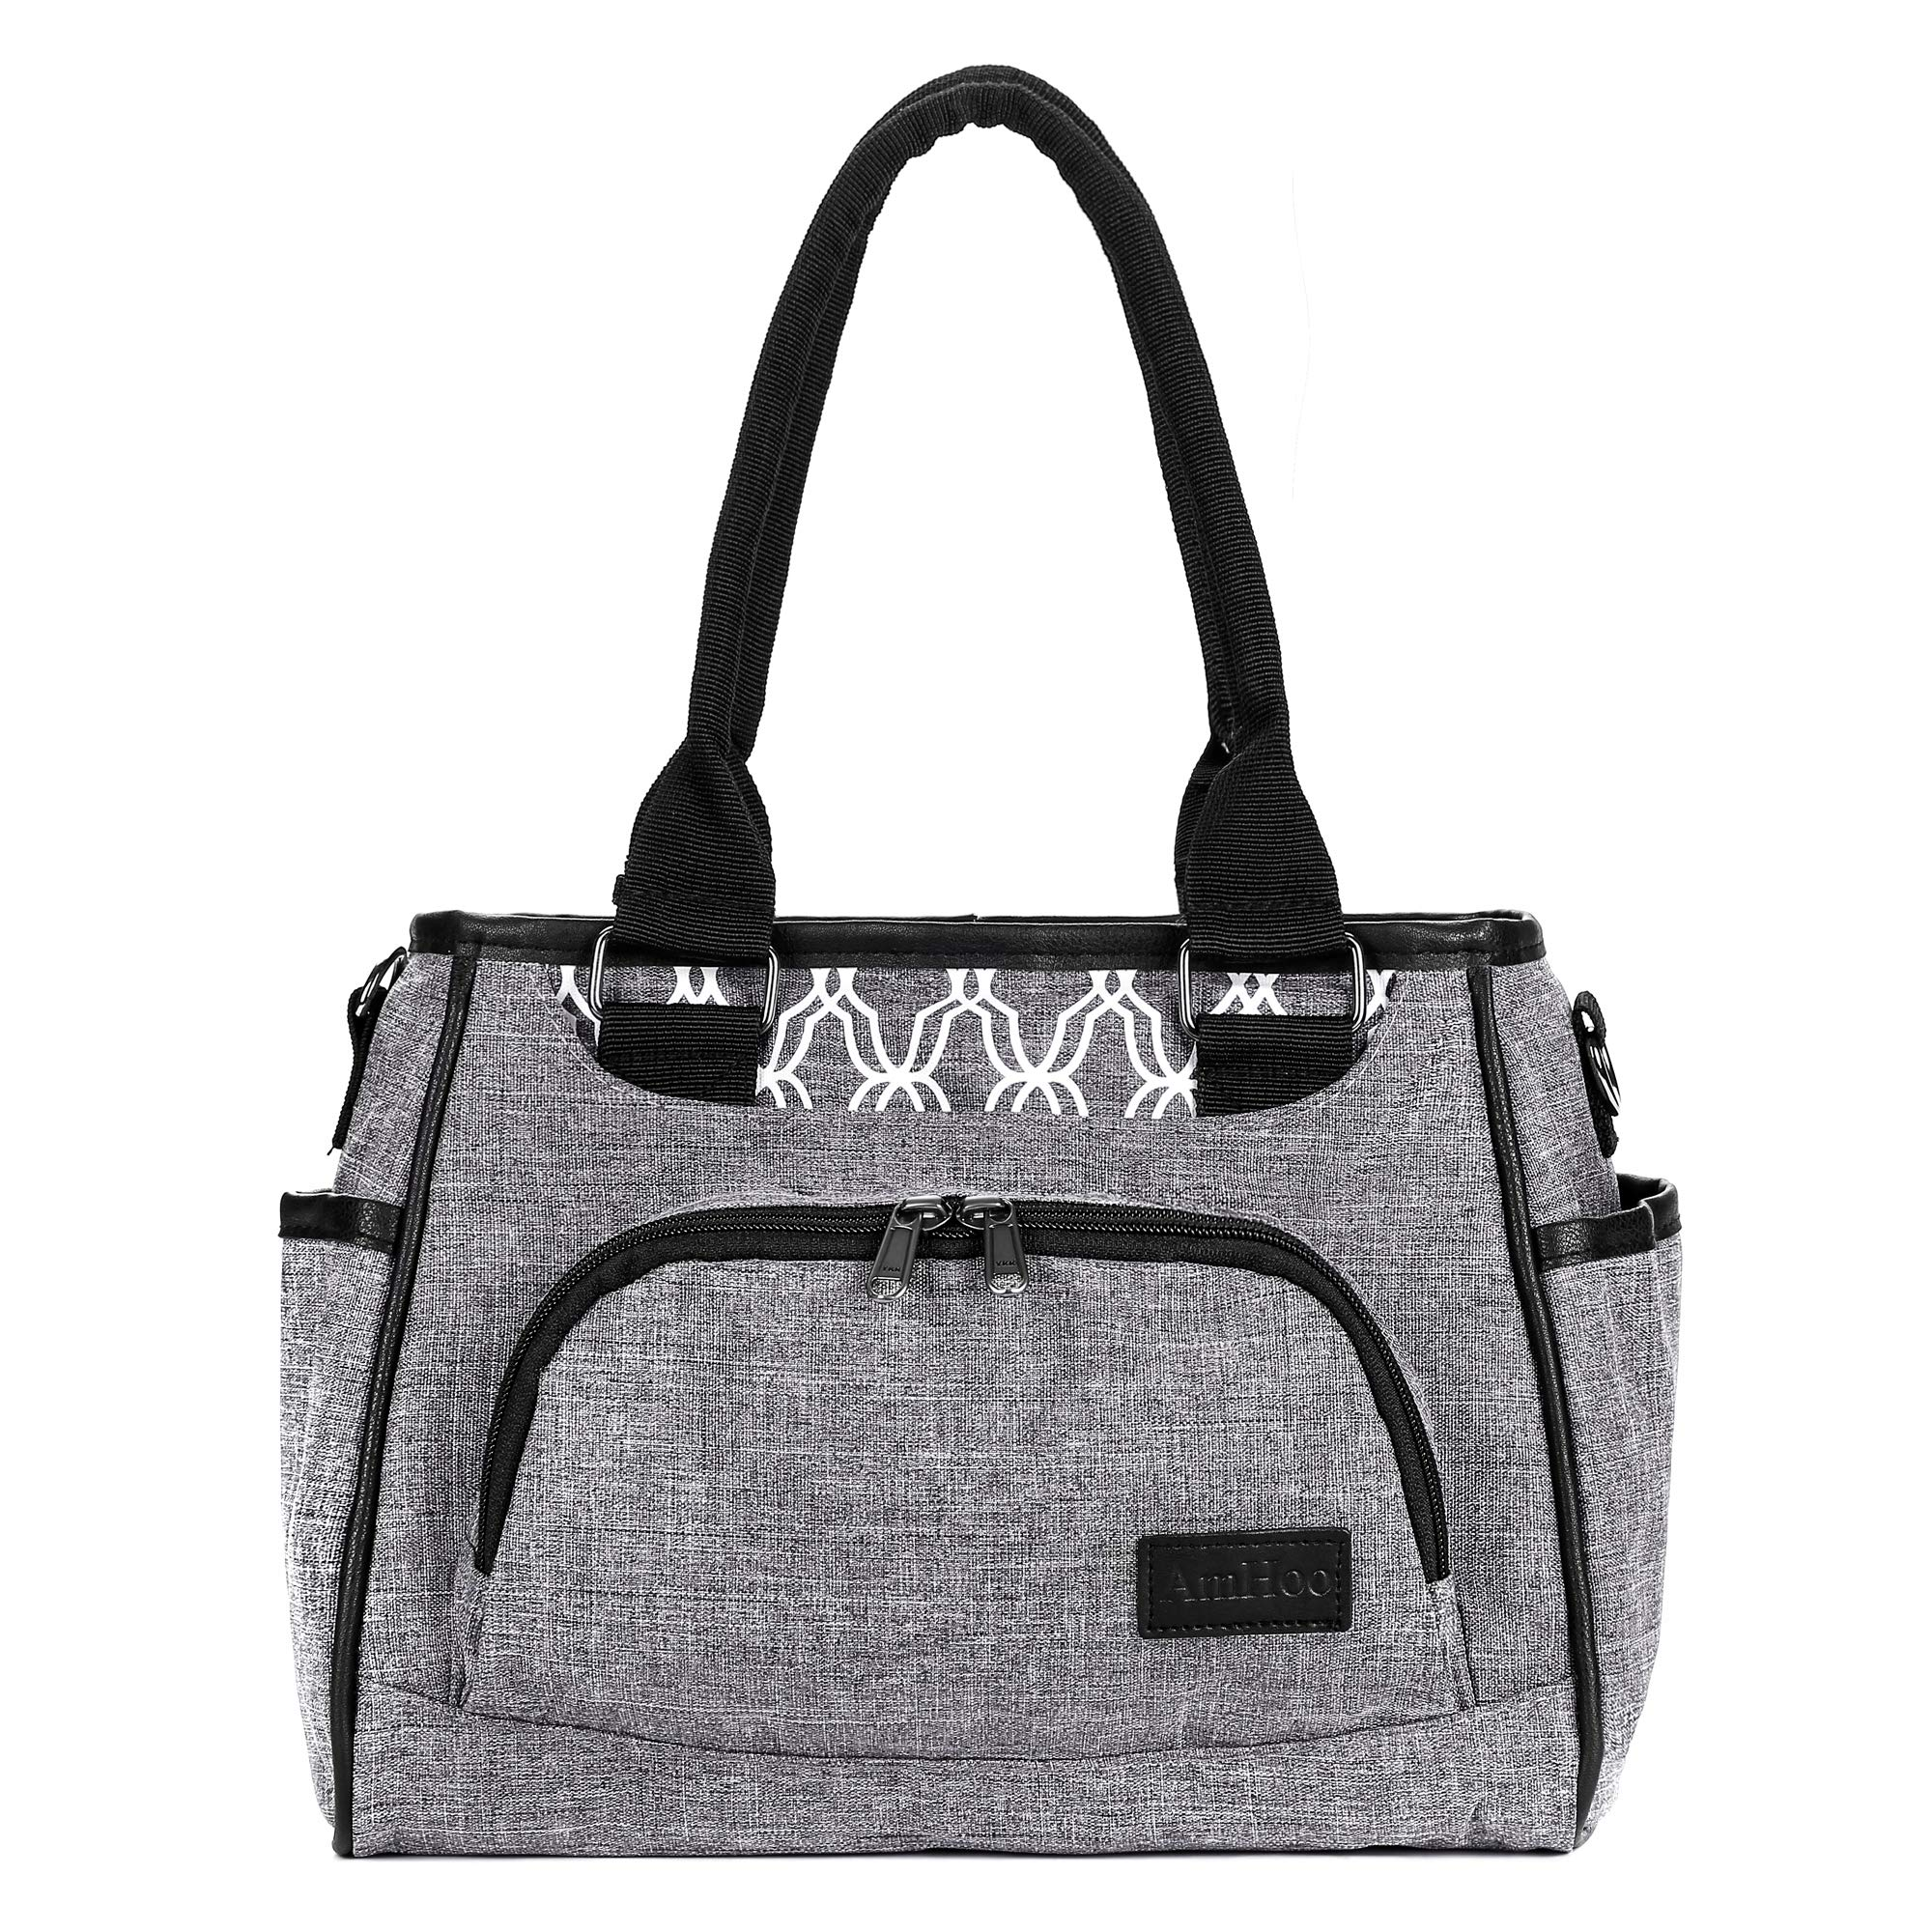 Reusable Lunch Bag Waterproof Cooler Bag Insulated Lunch Box Picnic Women Top Handle Satchel Handbags Stylish Adult 10L Lunch tote Bag for Work,School - Best YKK Zipper (Grey with White Pattern) by Am